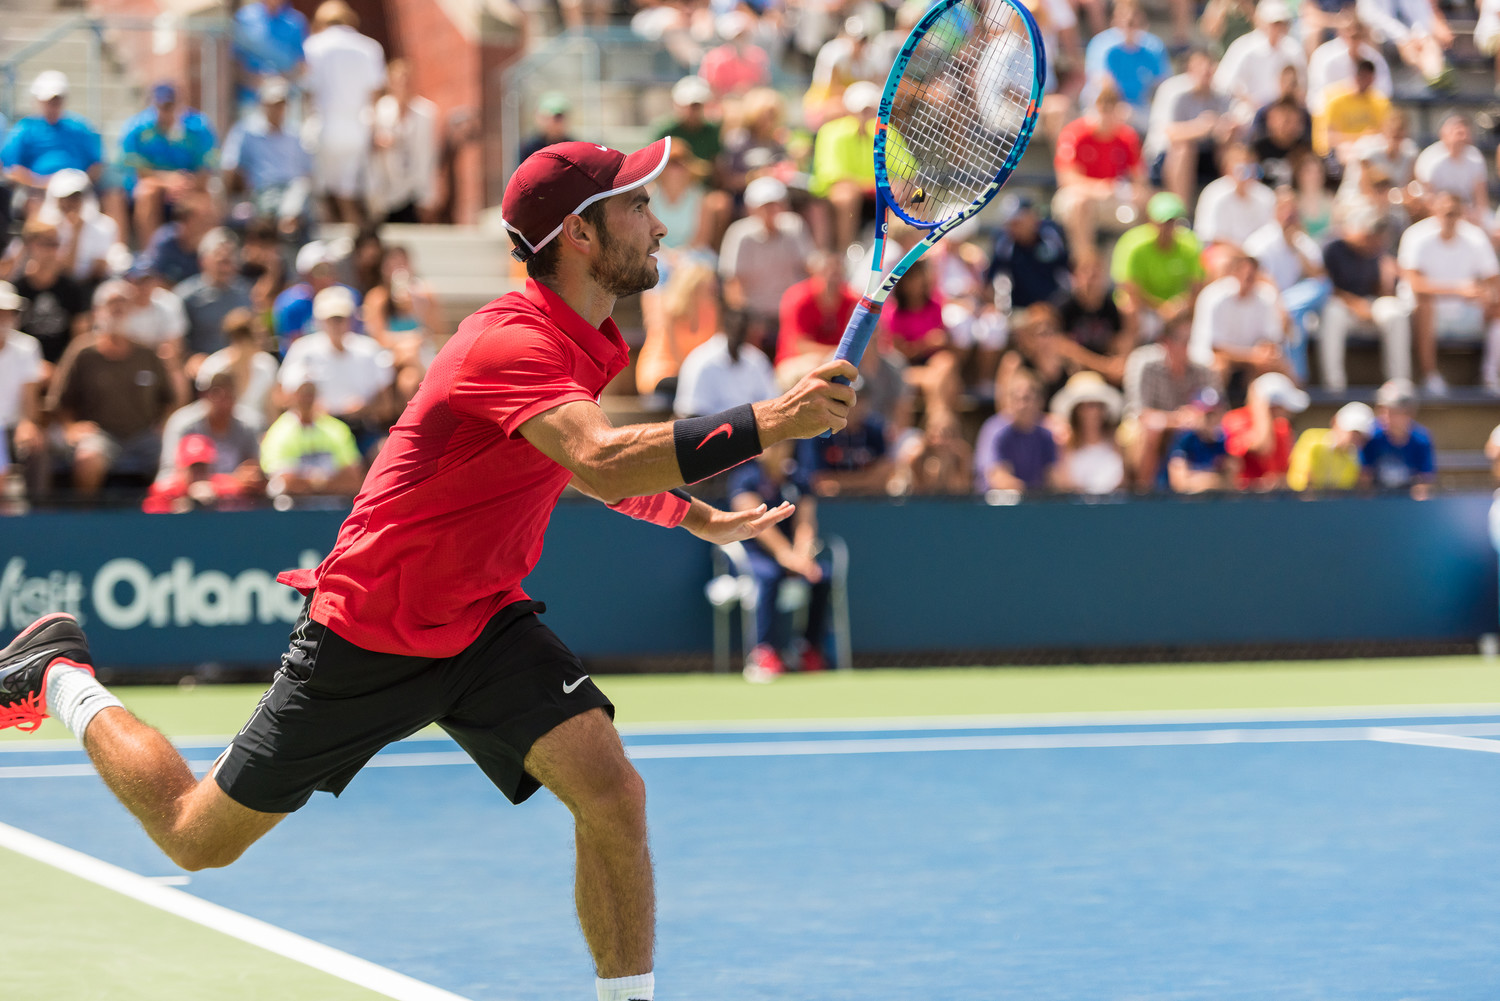 Noah Rubin, 21, of Merrick joined the professional ranks of tennis in 2015 and has since been competing at tournaments across the globe.